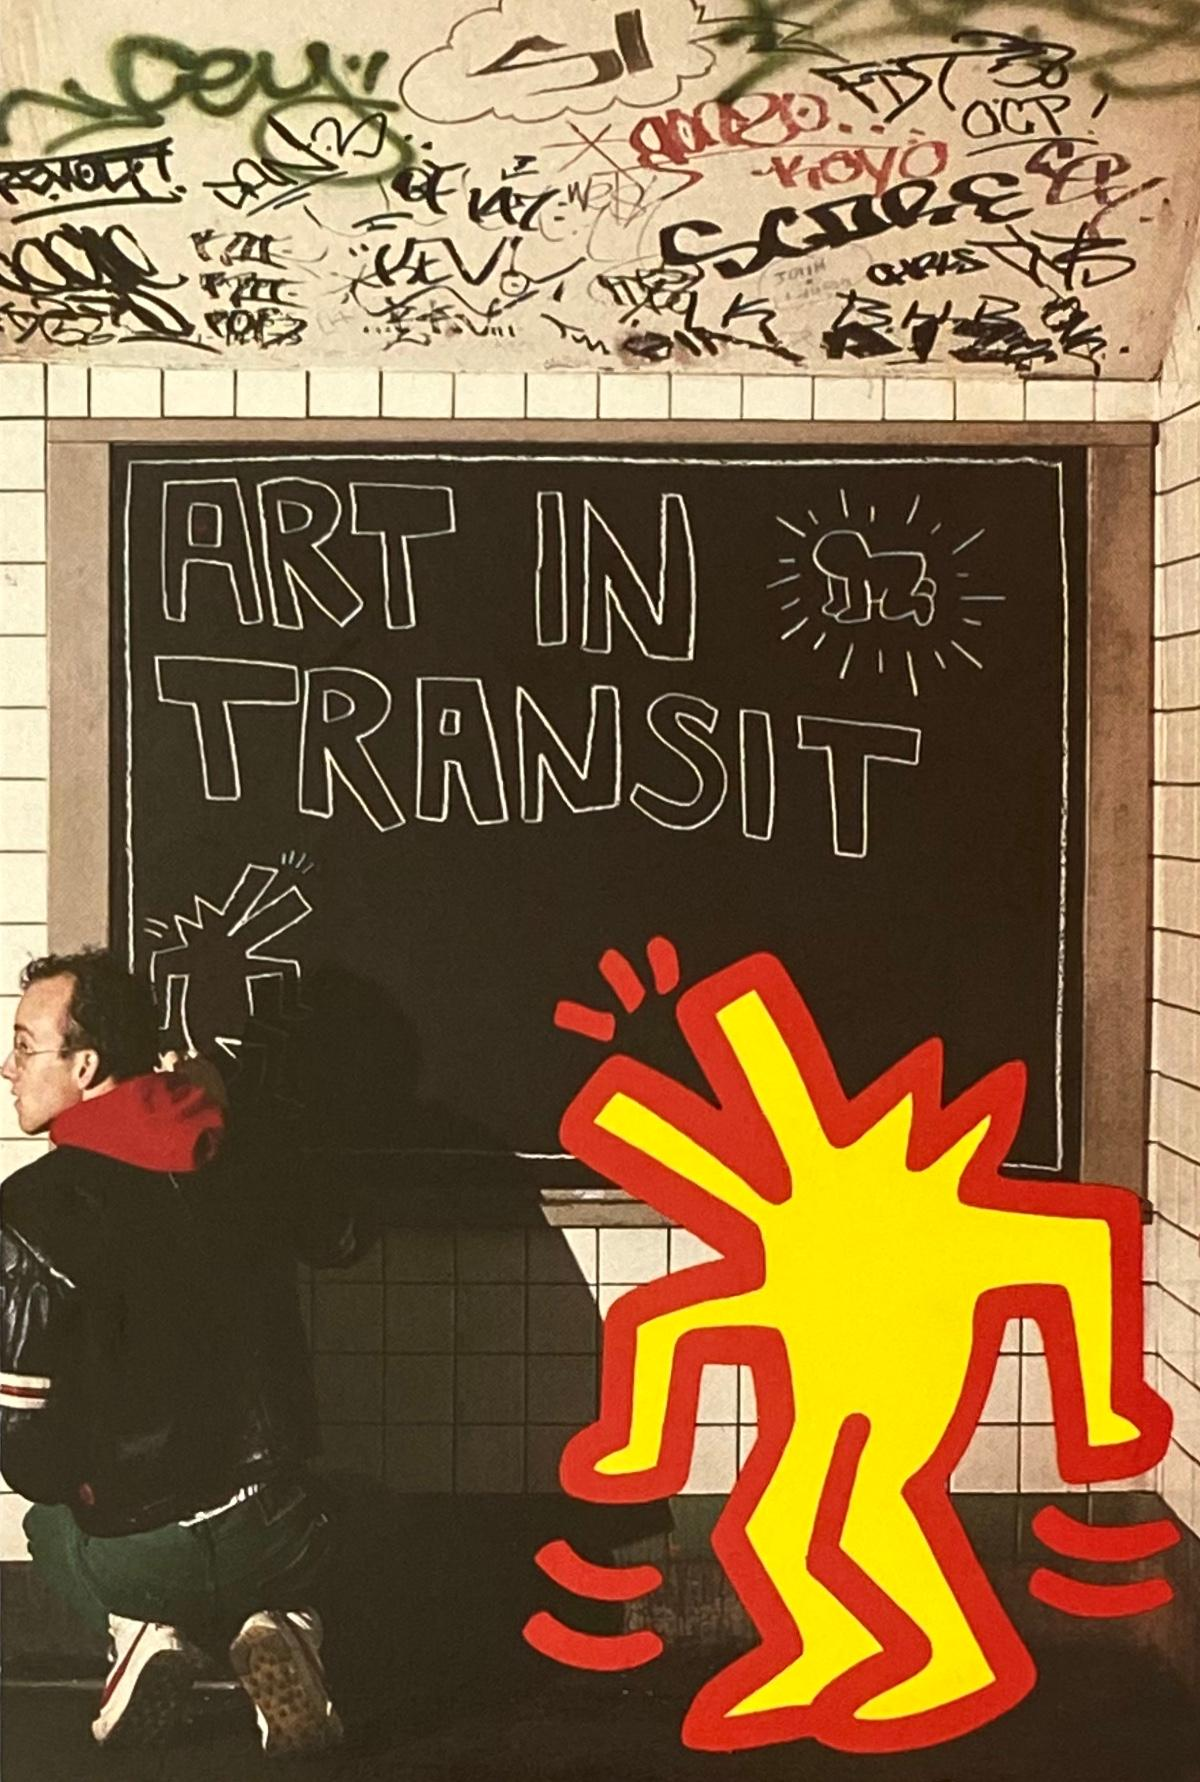 Keith Haring Art In Transit 1984 (announcement)